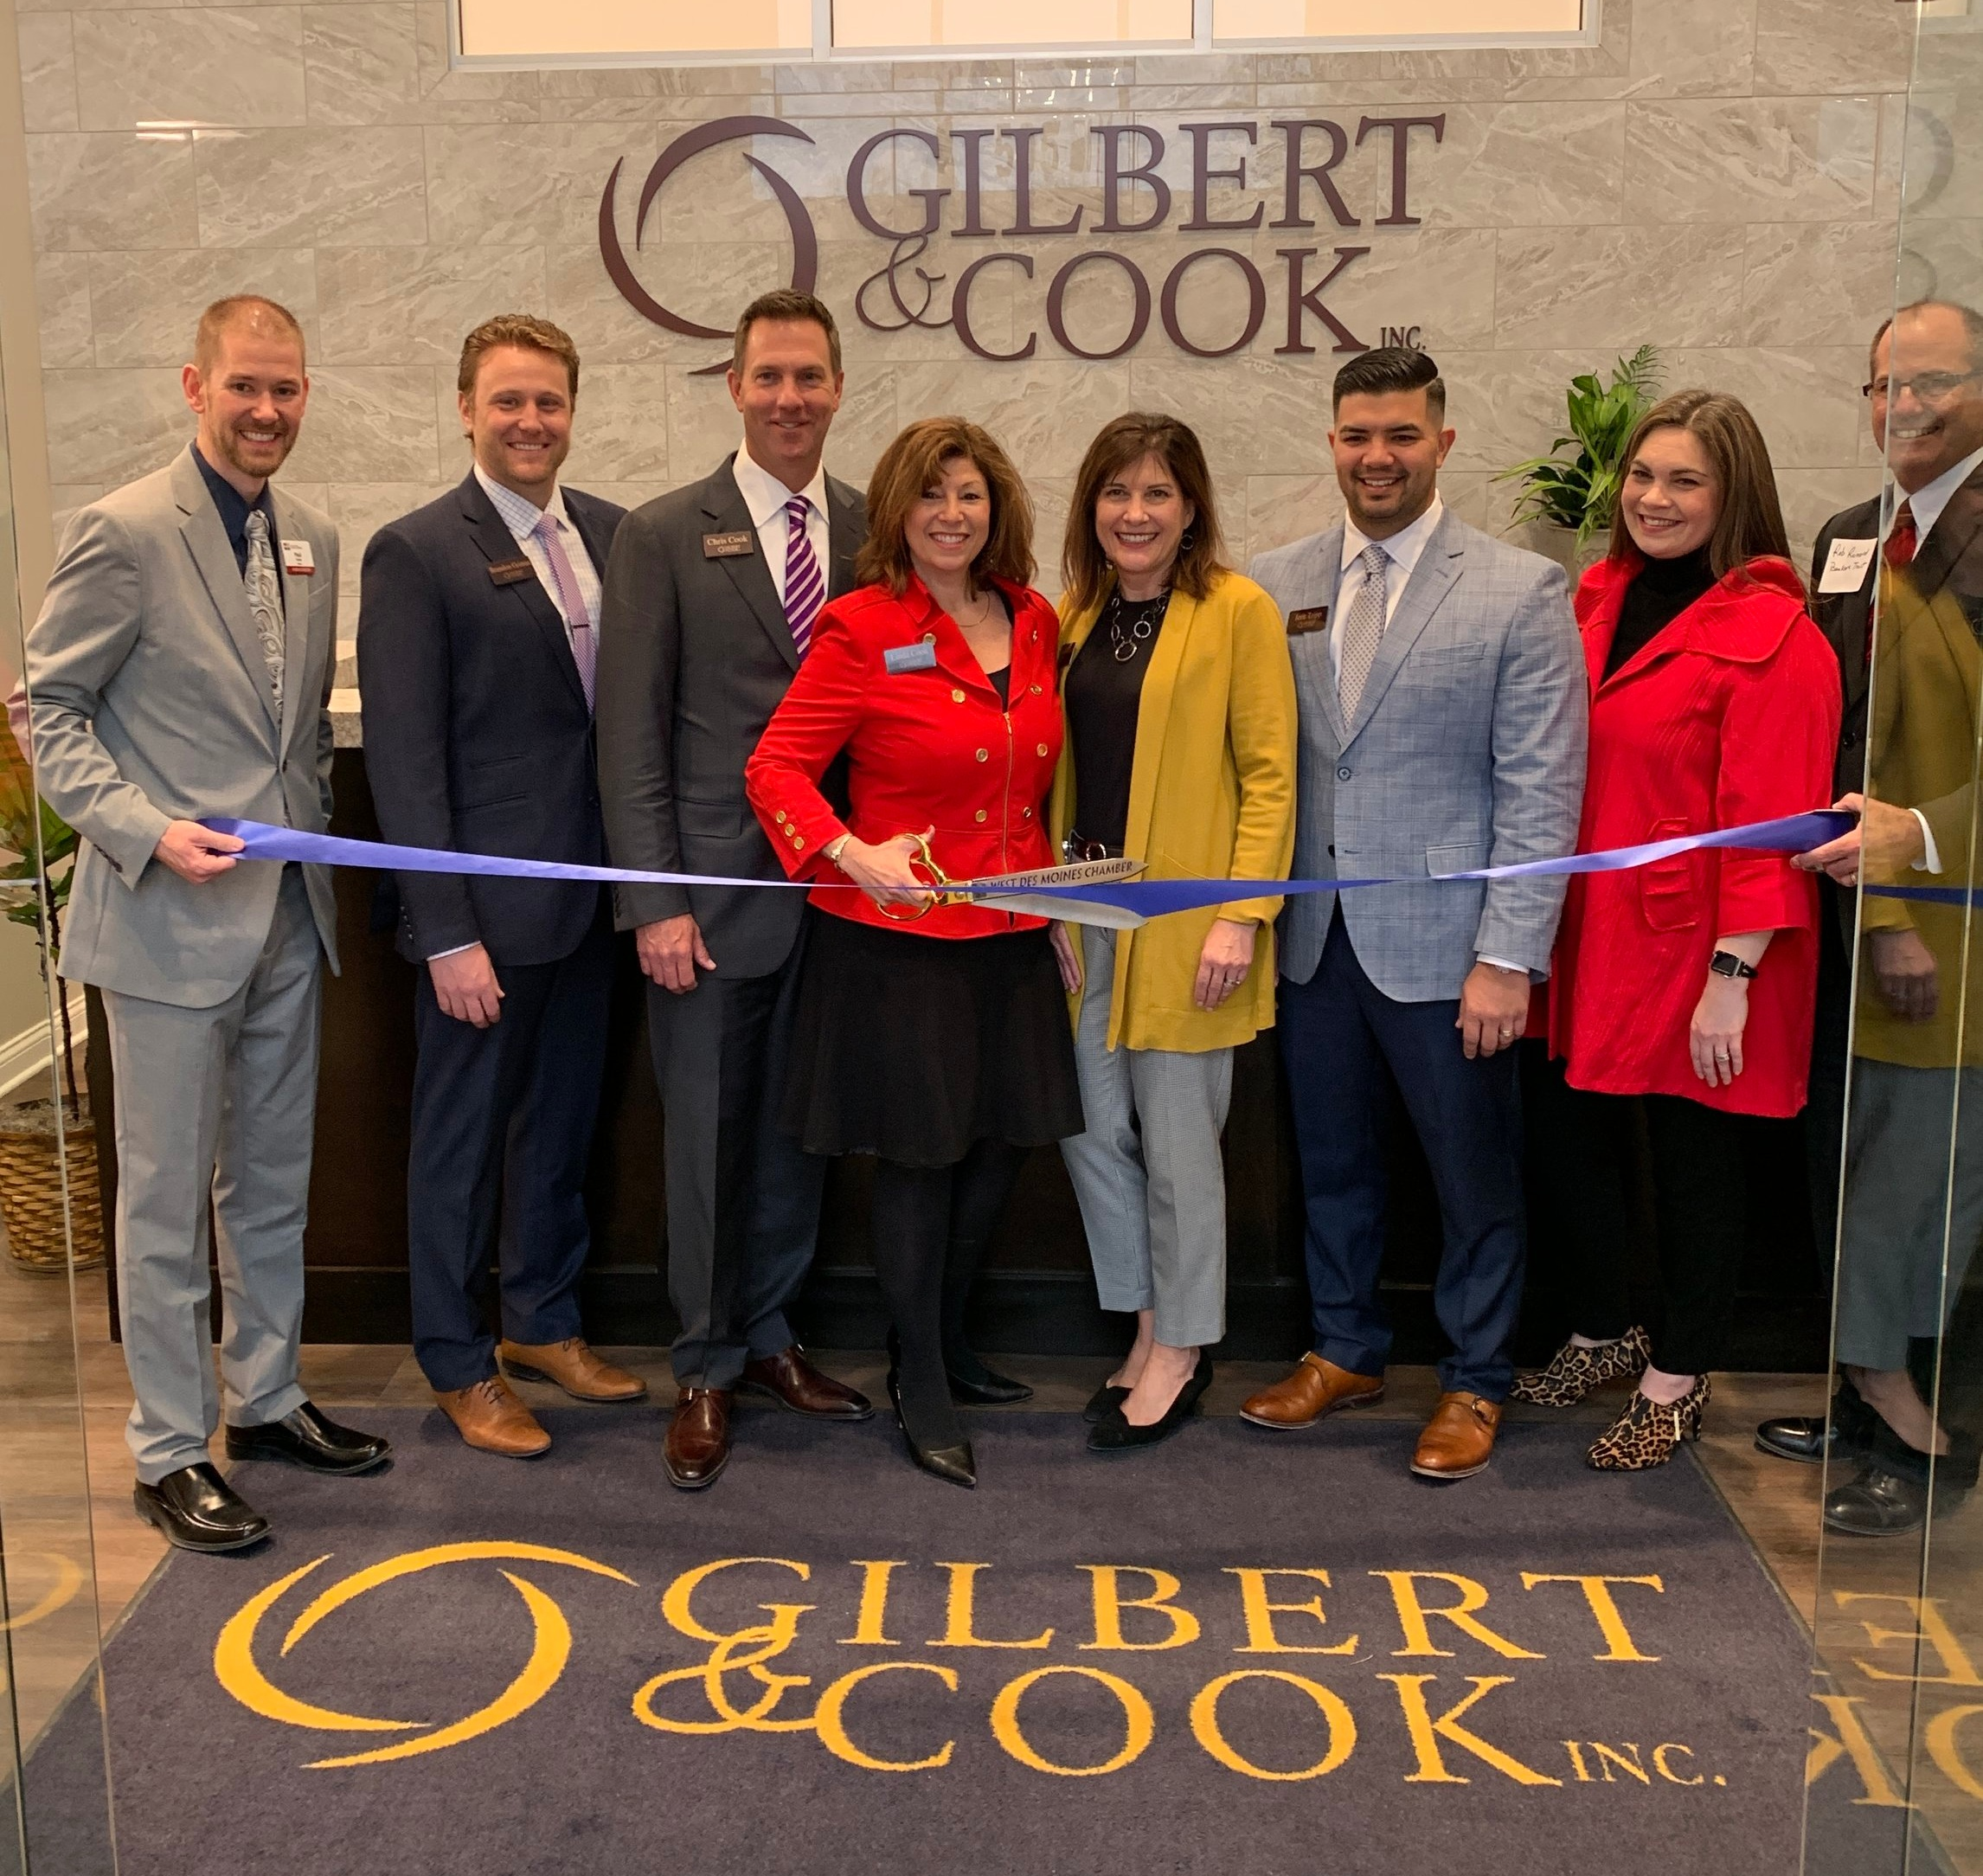 Ribbon Cutting Ceremony with the West Des Moines Chamber of Commerce.  Gilbert & Cook Partners: Brandon Grimm, Chris Cook, Linda Cook, Marlis Gilbert, Jerit Tripp & Megan Rosenstiel